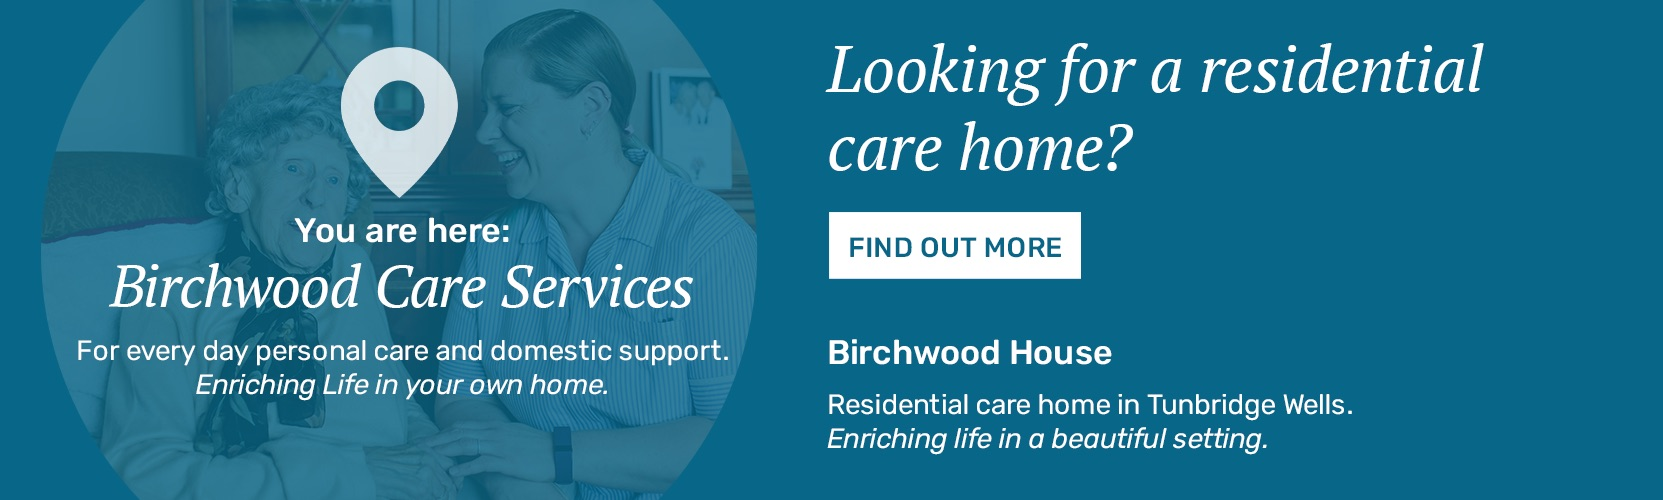 Residential Care Home in Tunbridge Wells